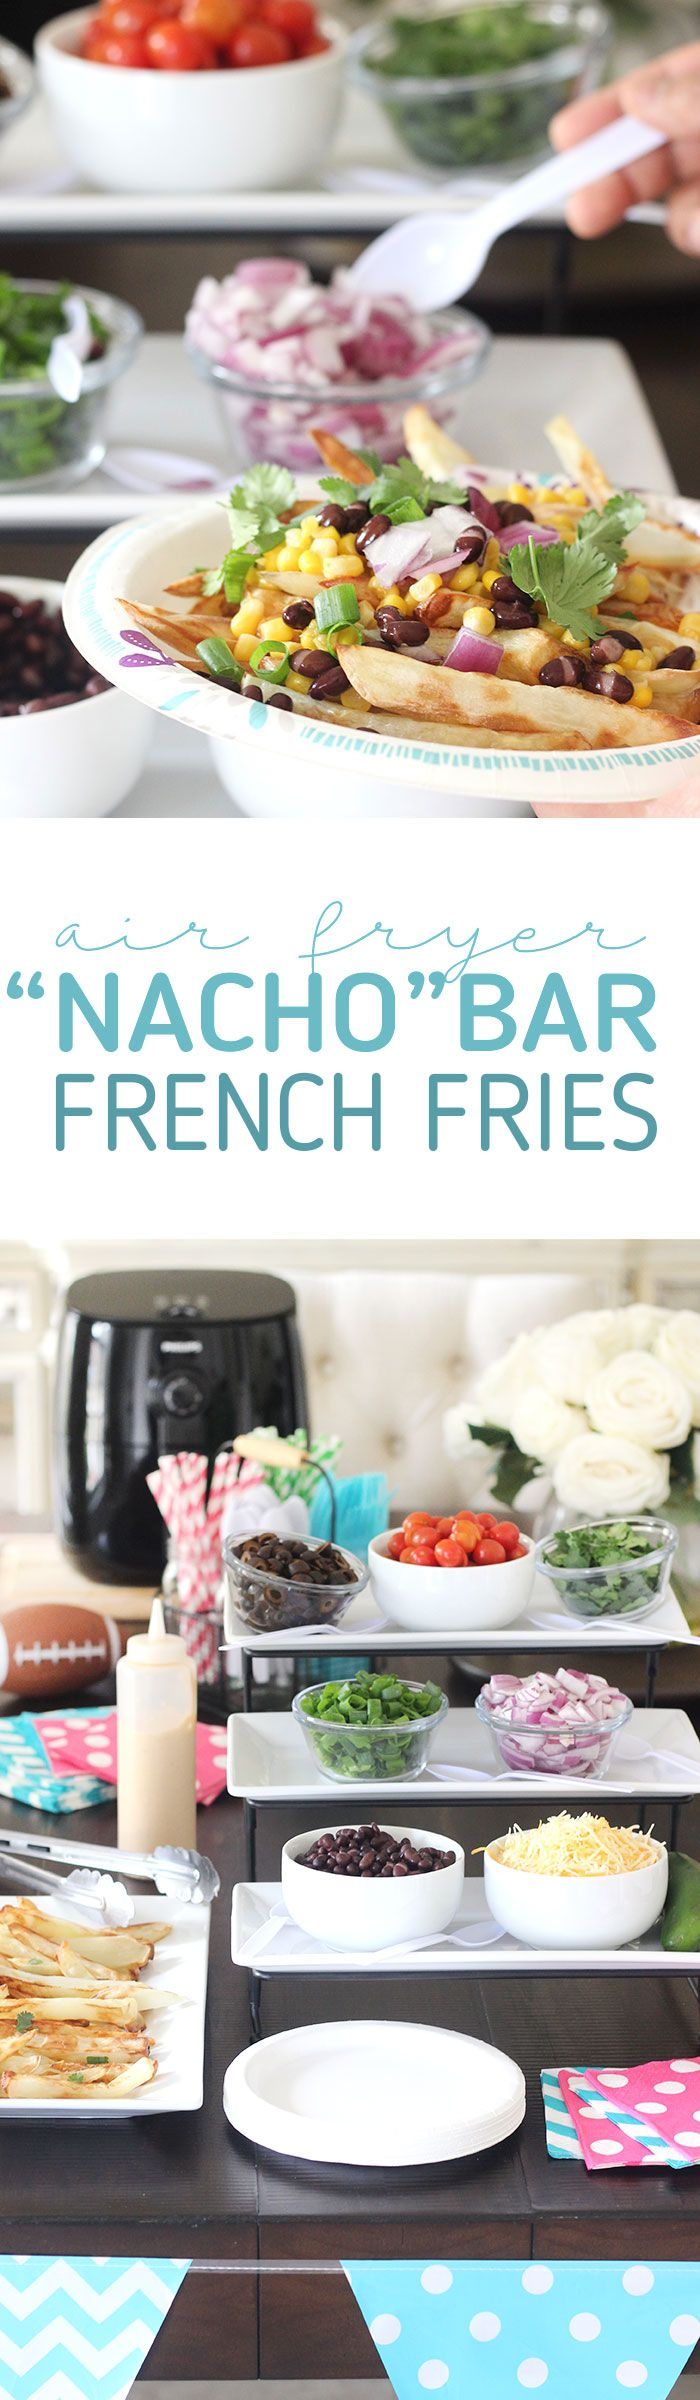 Nacho Bar French Fries with Philips AirFryer #ad #PhilipsGameDay